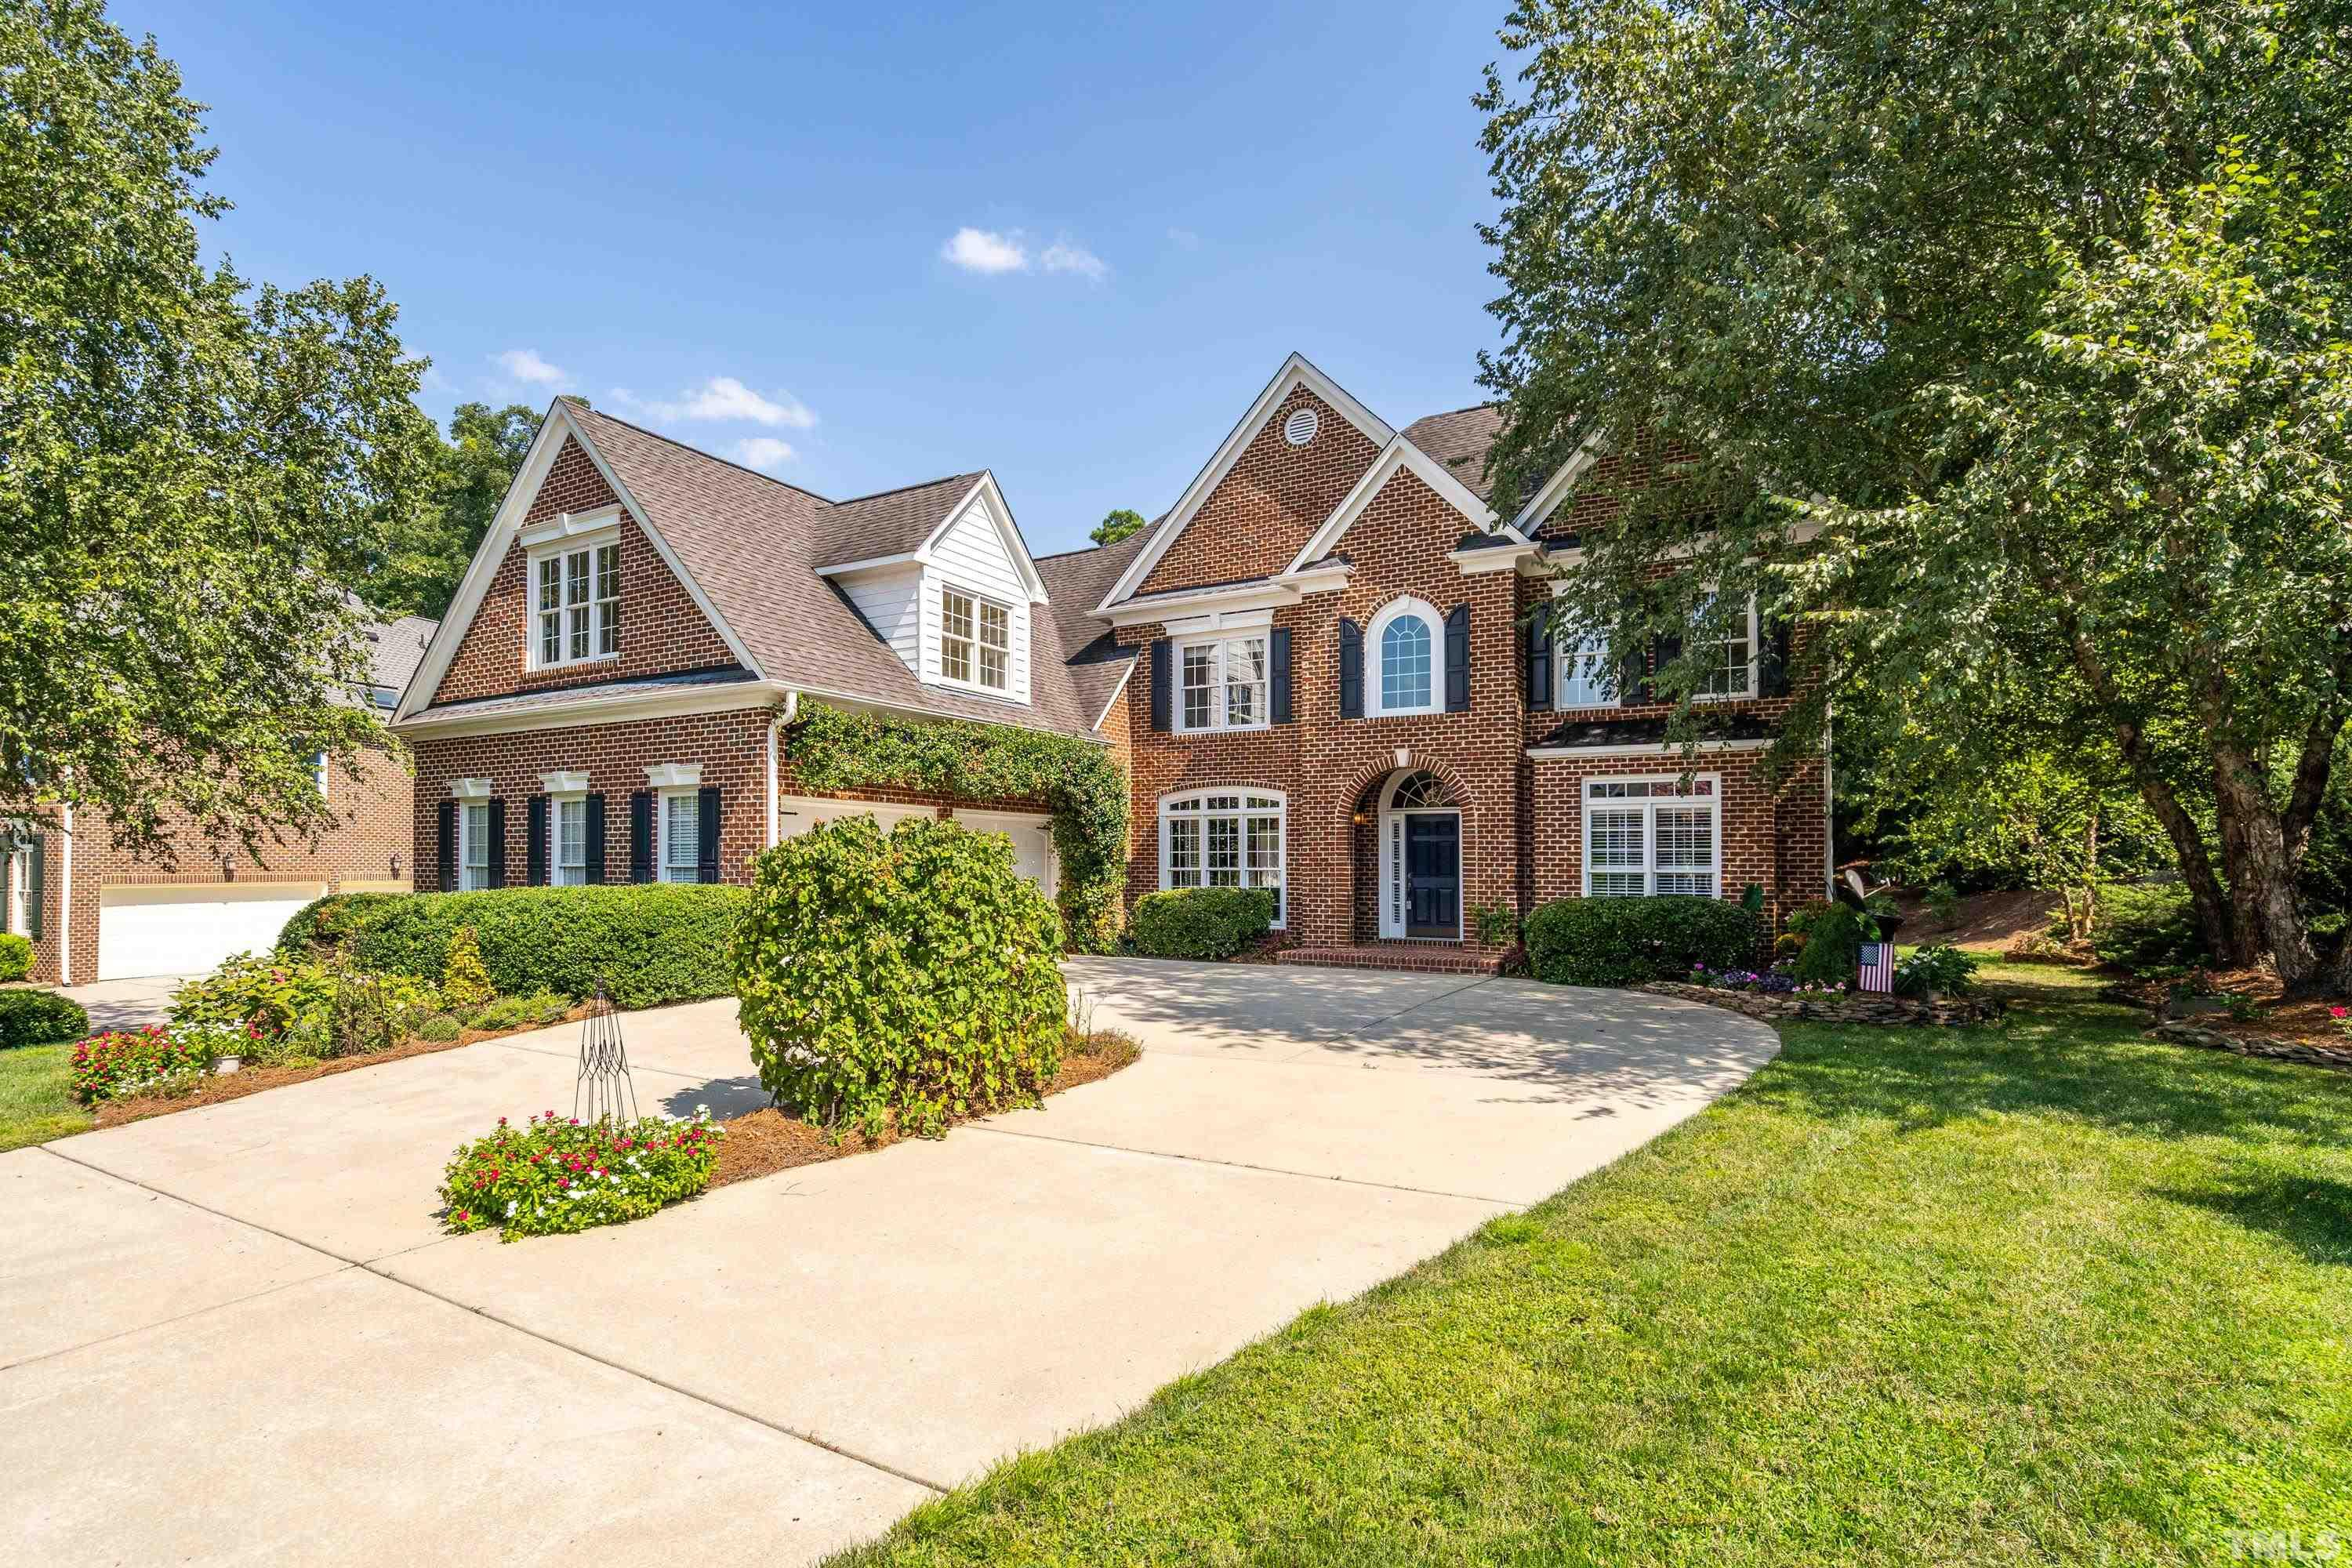 Stunning all-brick custom home in sought after Weston Estates. Gourmet chef's kitchen w/ large center prep island & breakfast nook open to a 2 story family rm w/ gas fireplace. Separate formal dining rm, living rm, Office/Flex rm & full bath on first floor. 2nd floor boasts a luxurious owner's suite w/ retreat rm & 3 addtl bedrooms. Finished 3rd floor Rec Room w/ full bath. Cathedral ceiling 3-season rm  w/ wood burning fireplace overlooking beautifully landscaped backyard. Close to RTP, SAS, Apple, RDU!